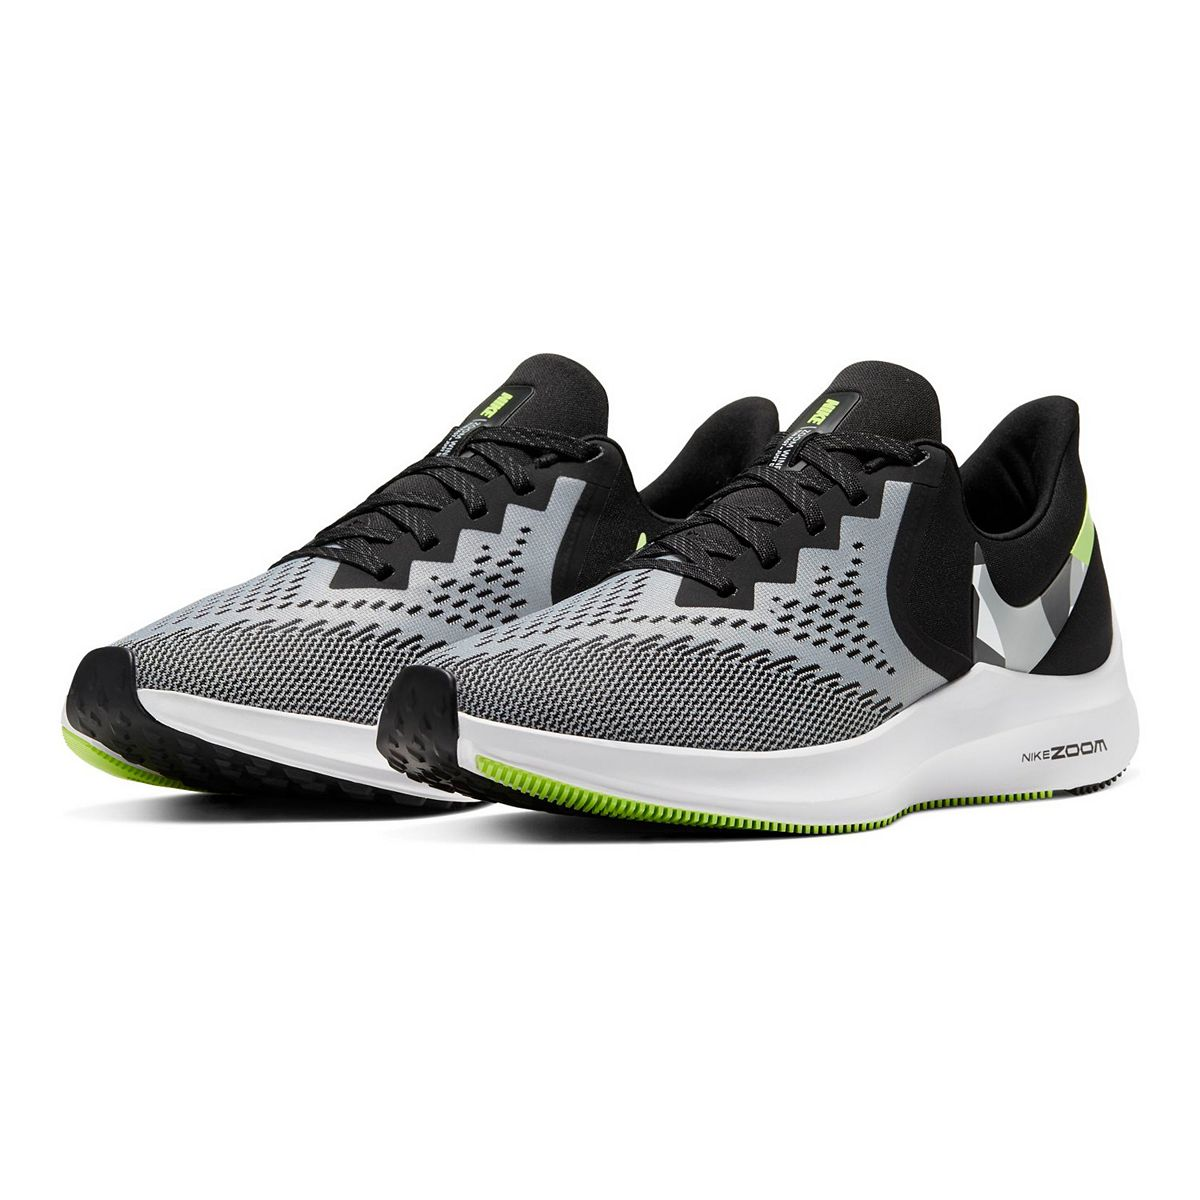 Nike Air Zoom Winflo 6 Men's Running Shoes Black Anthracite uS1Cp